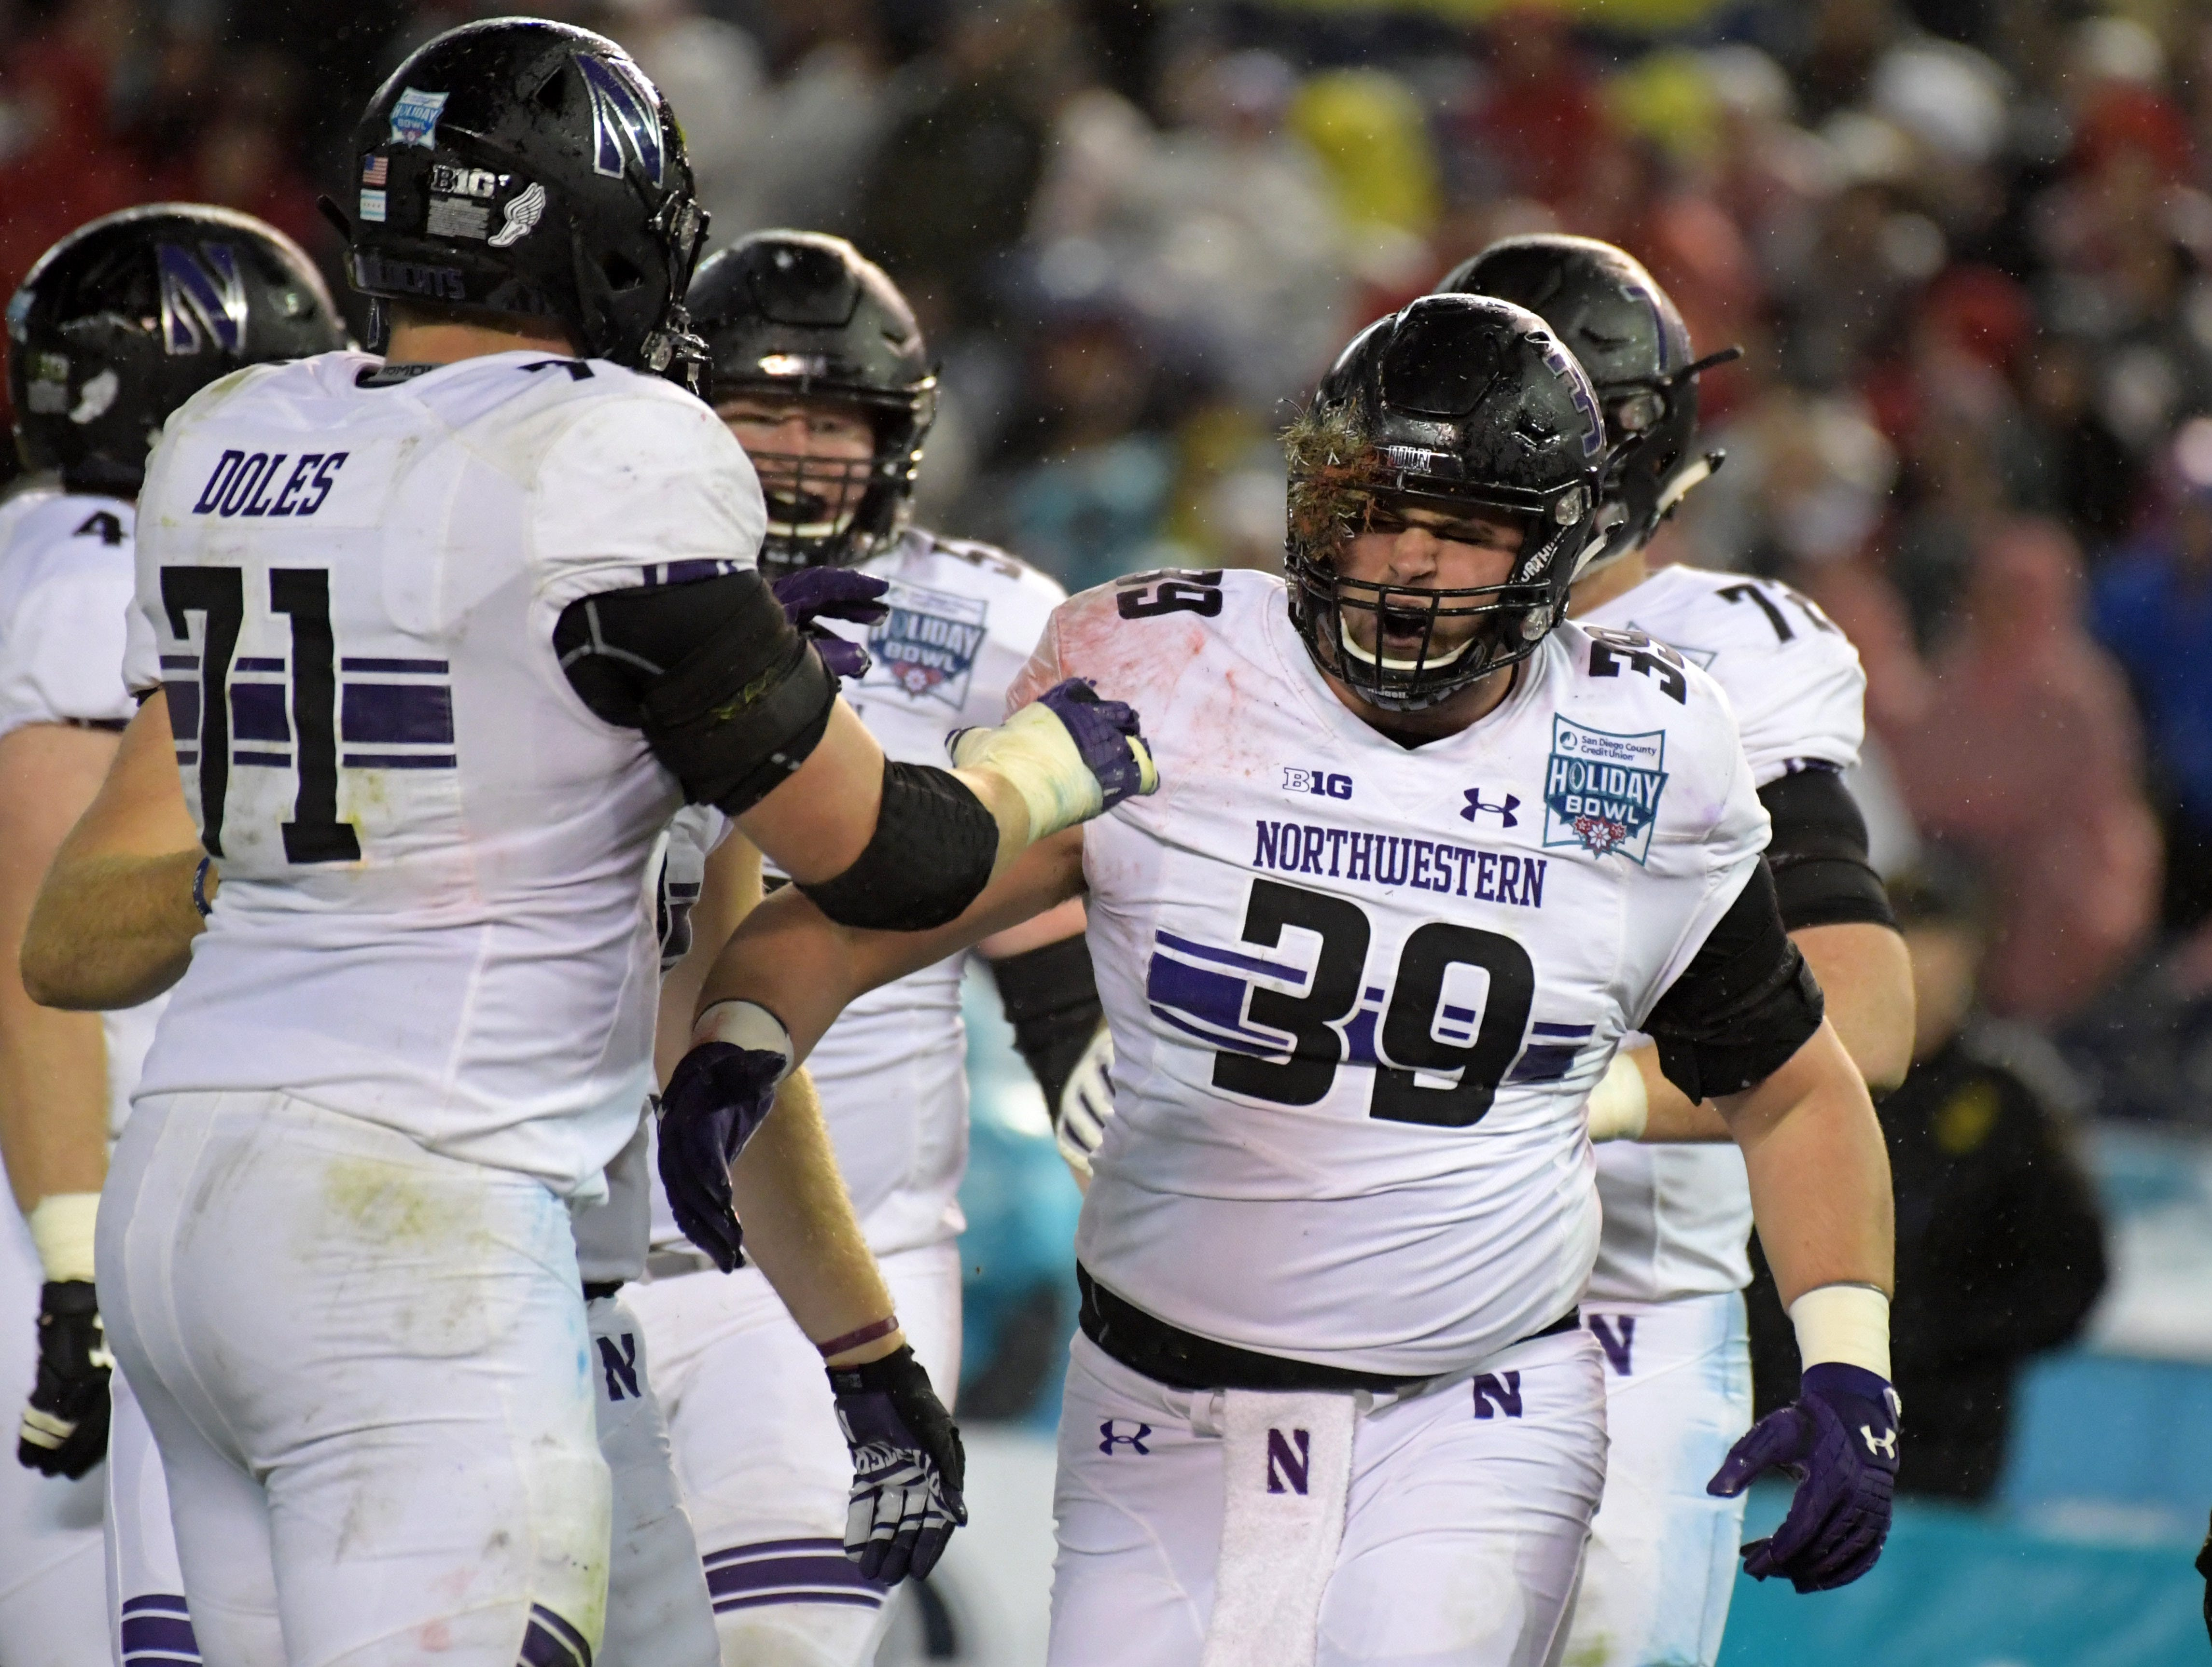 Northwestern Wildcats offensive lineman Trey Klock (39) celebrates after a touchdown reception against the Utah Utes in the Holiday Bowl.